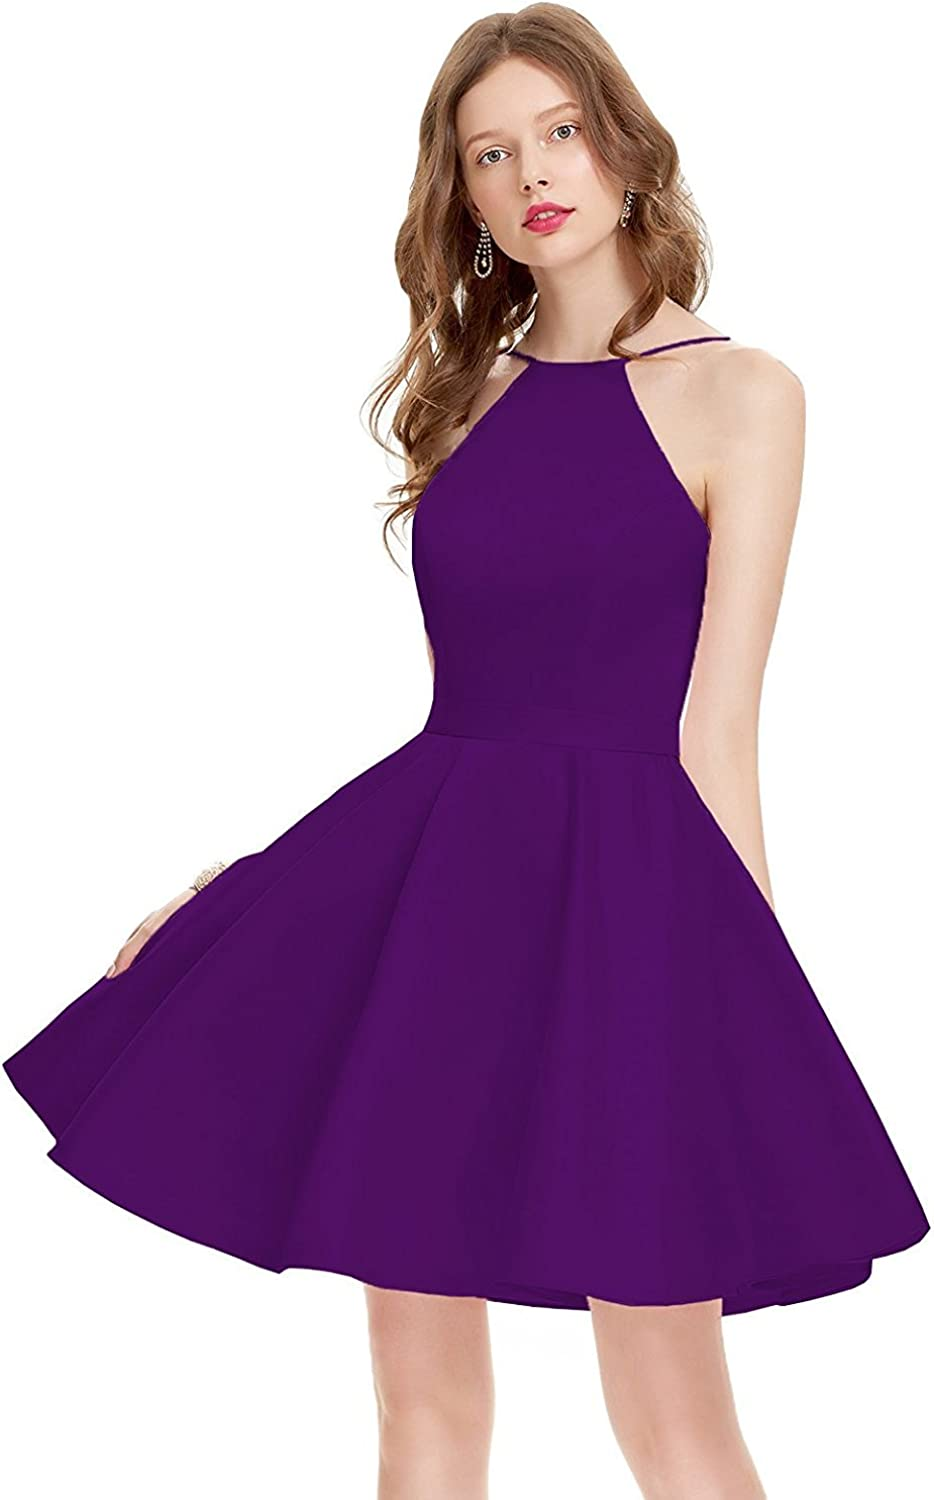 LiBridal Women's Short Spaghetti Straps Prom Dress Open Back Homecoming Party Gowns with Belt